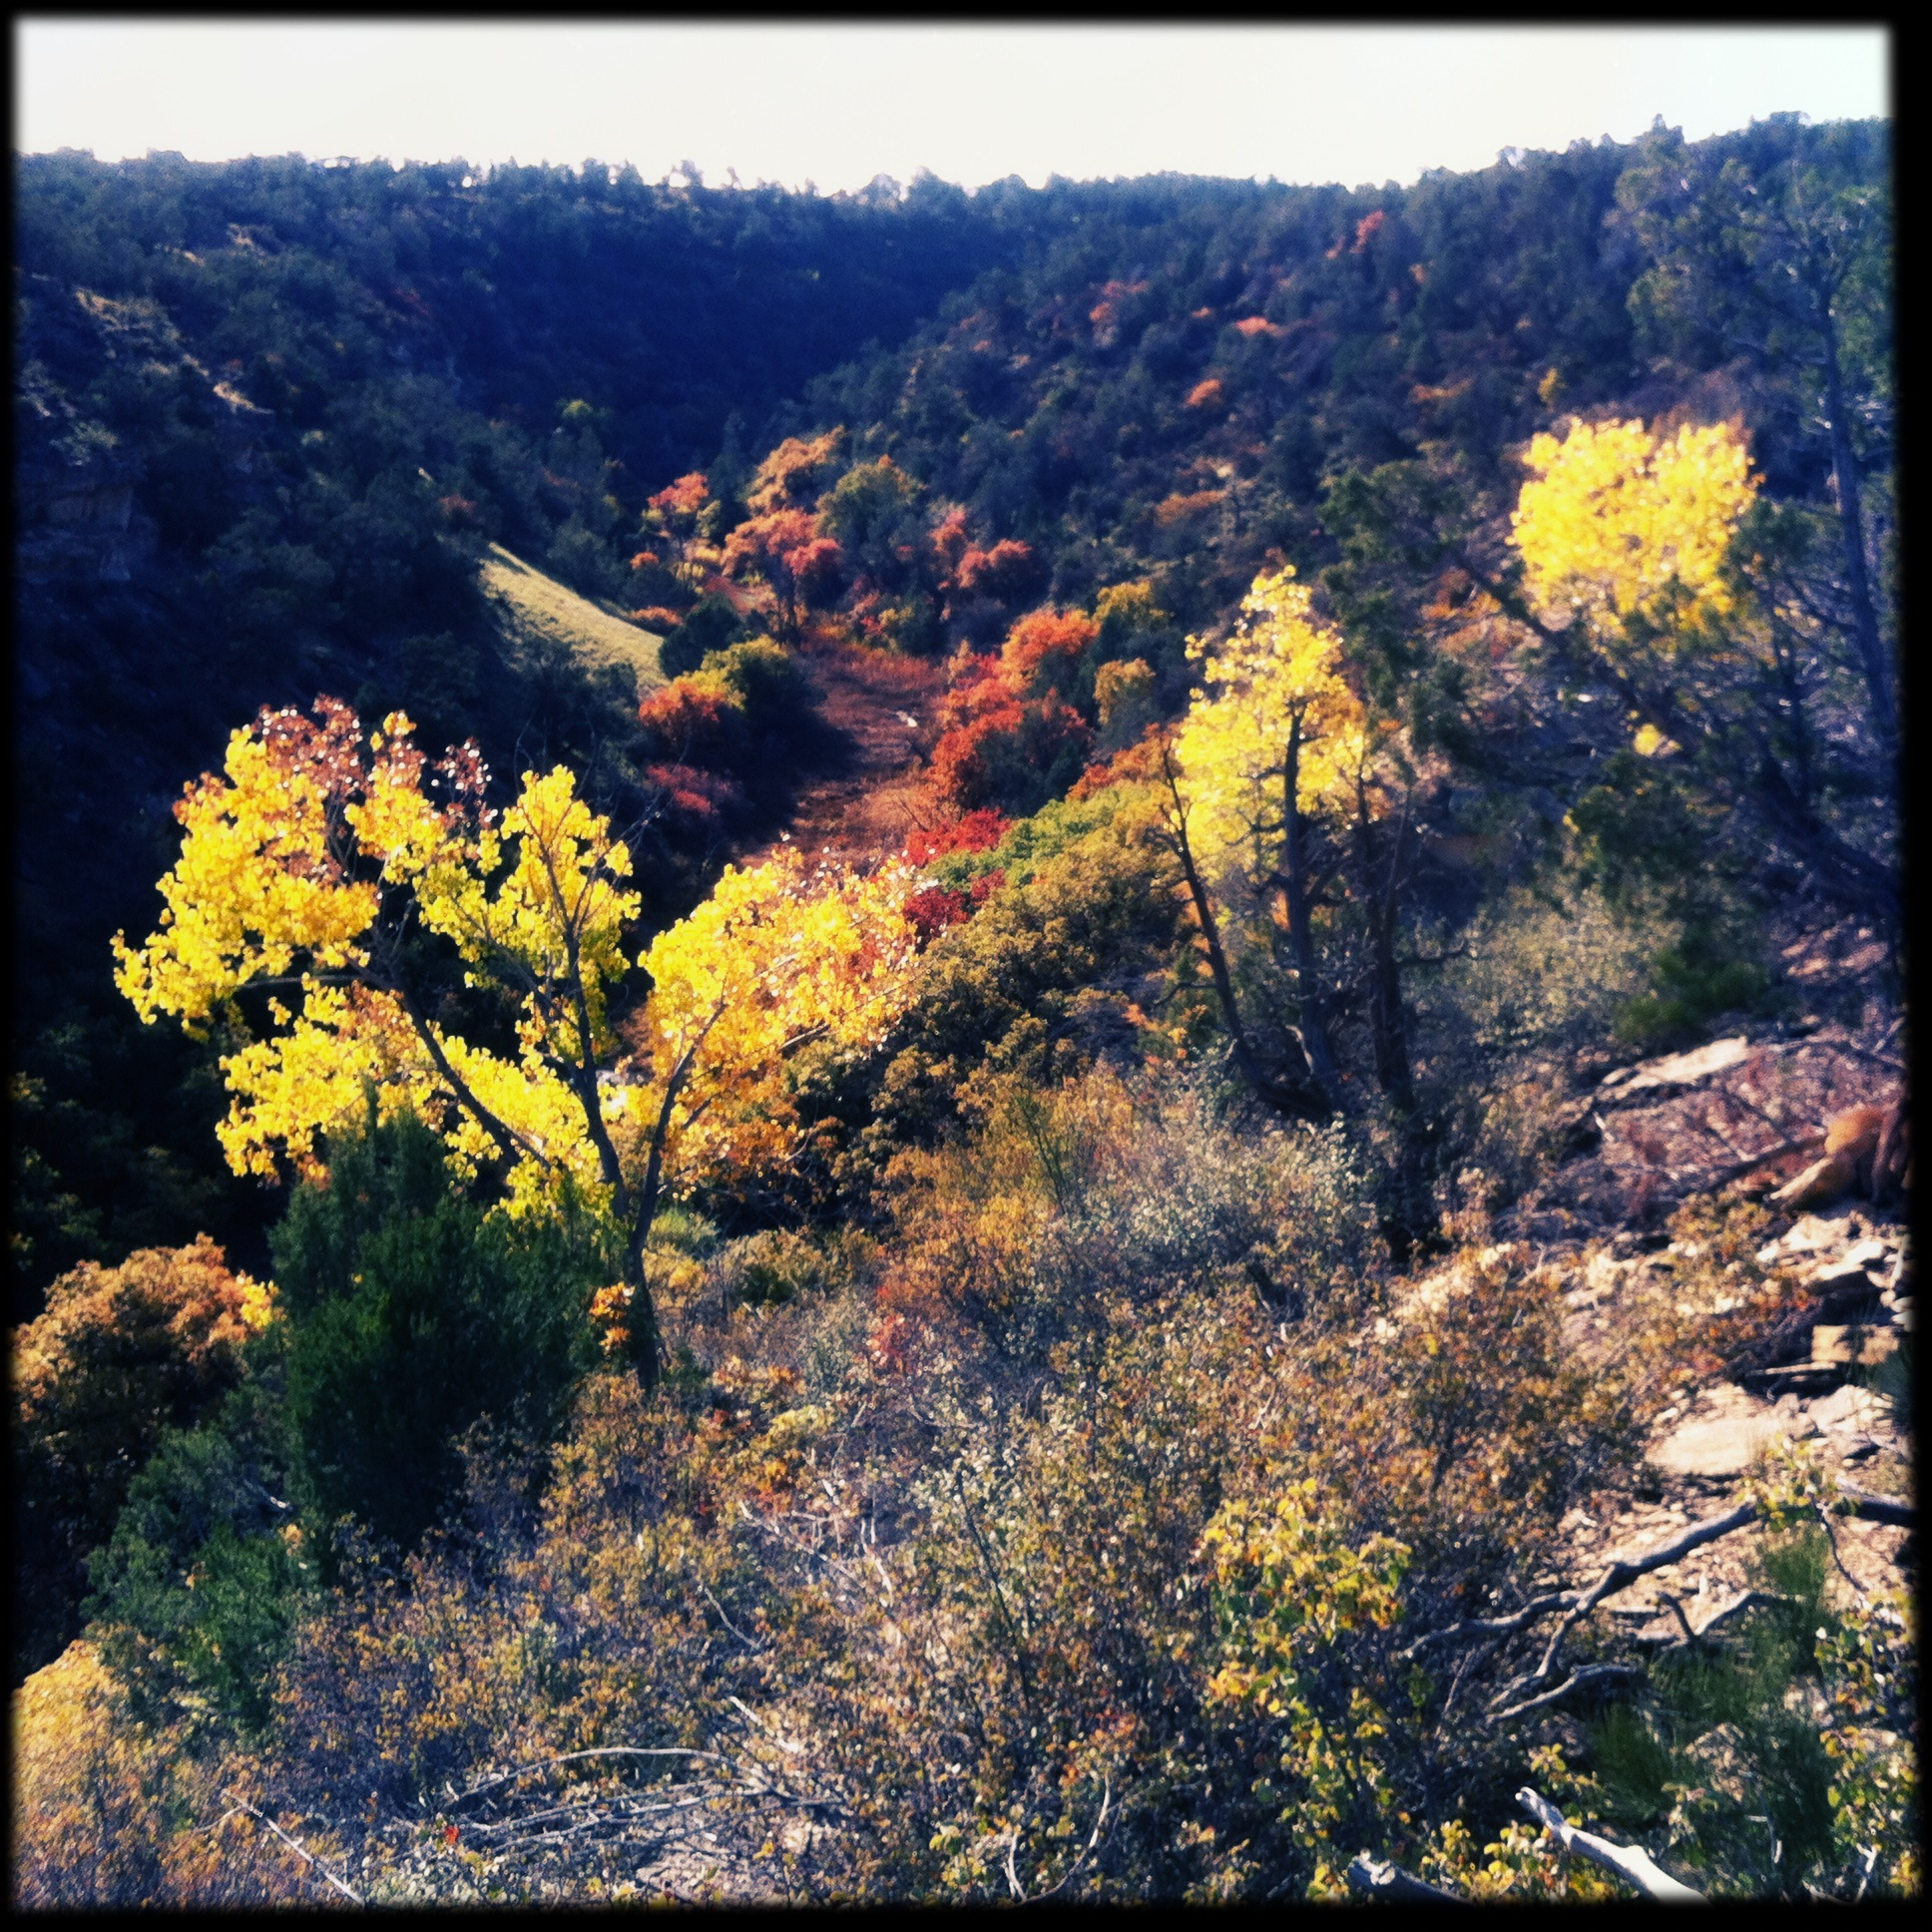 October 12, the colors continue to intensify.